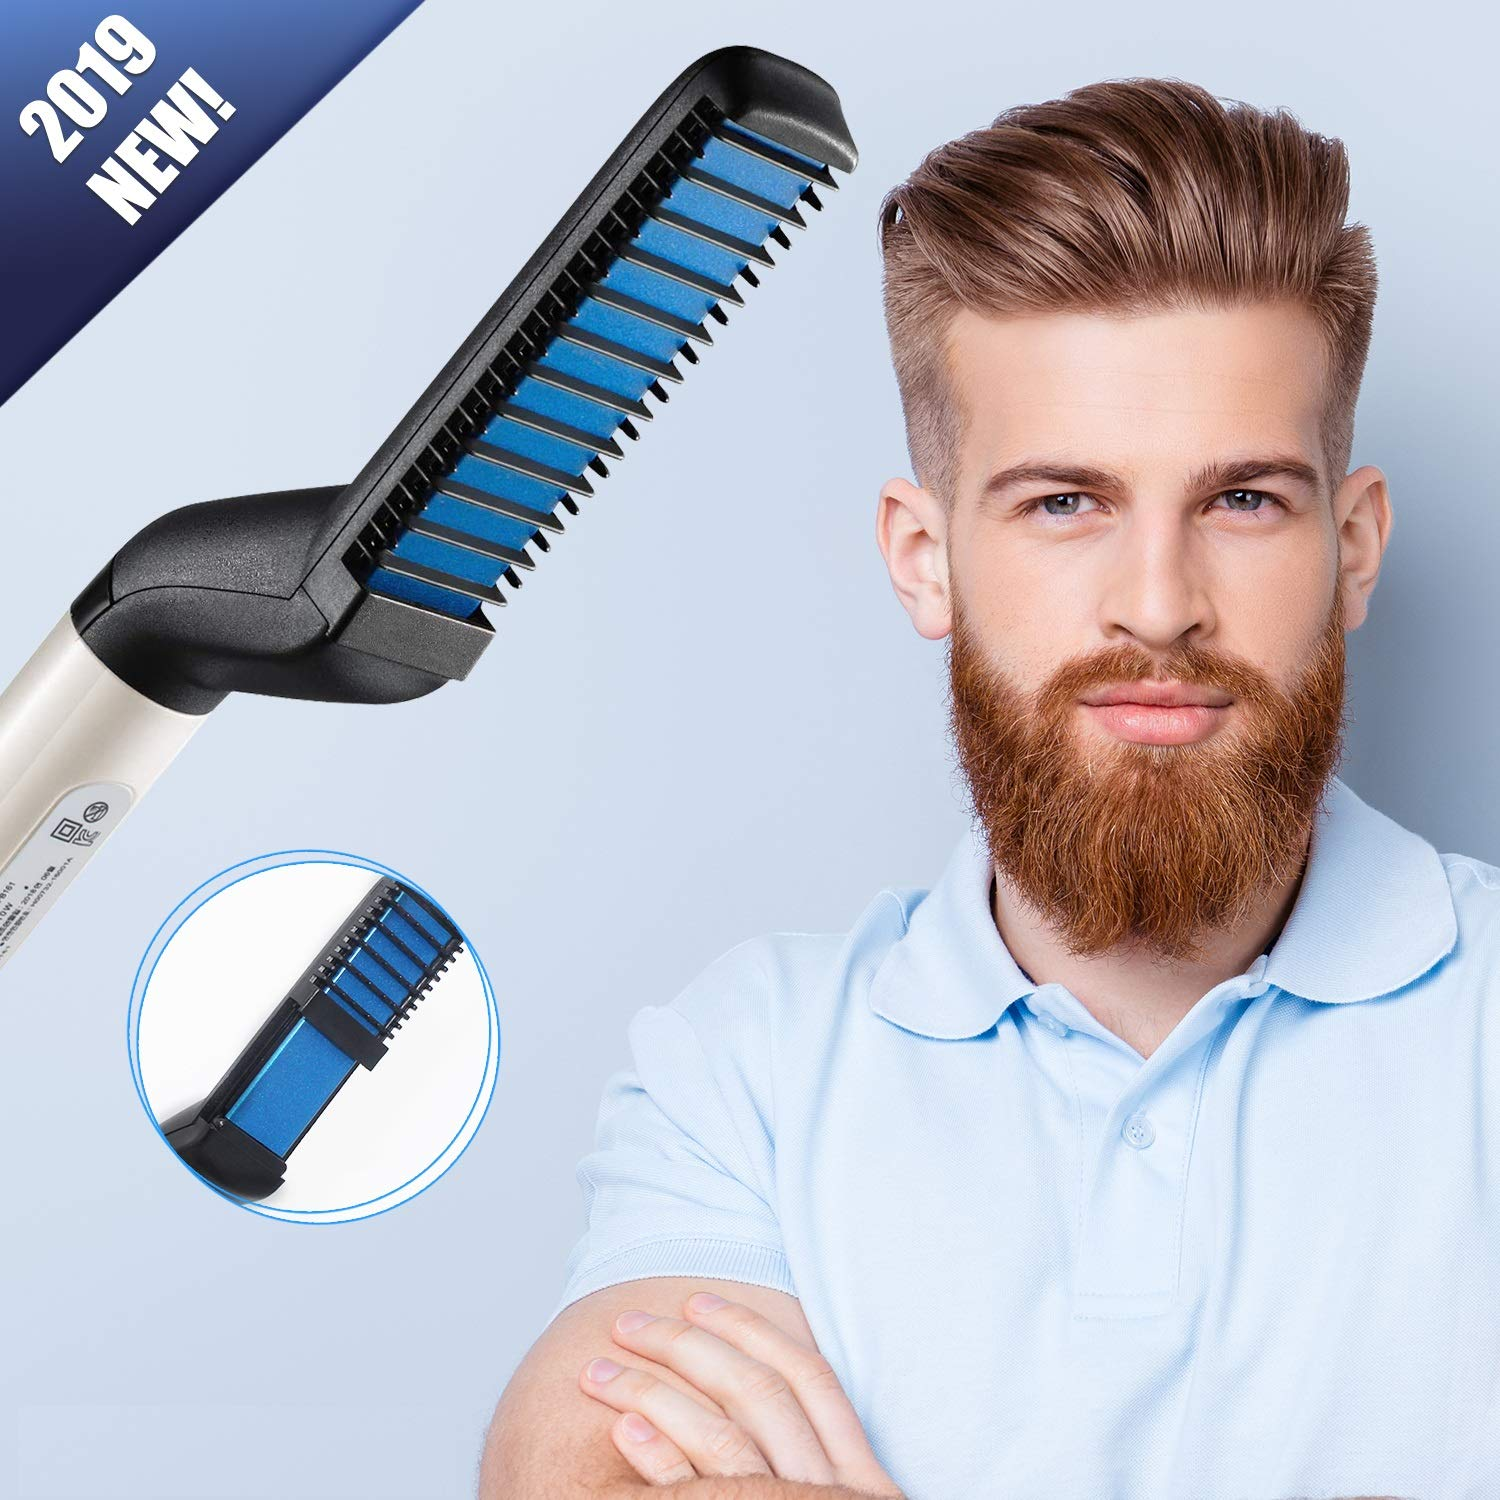 Beard Straightener, Upgraded Electric Beard Straightener and Hair Straightener, Multifunctional Beard and Hair Straightening Comb, Best Heat Beard Straightener and Hair Straightener Brush by Ulensy